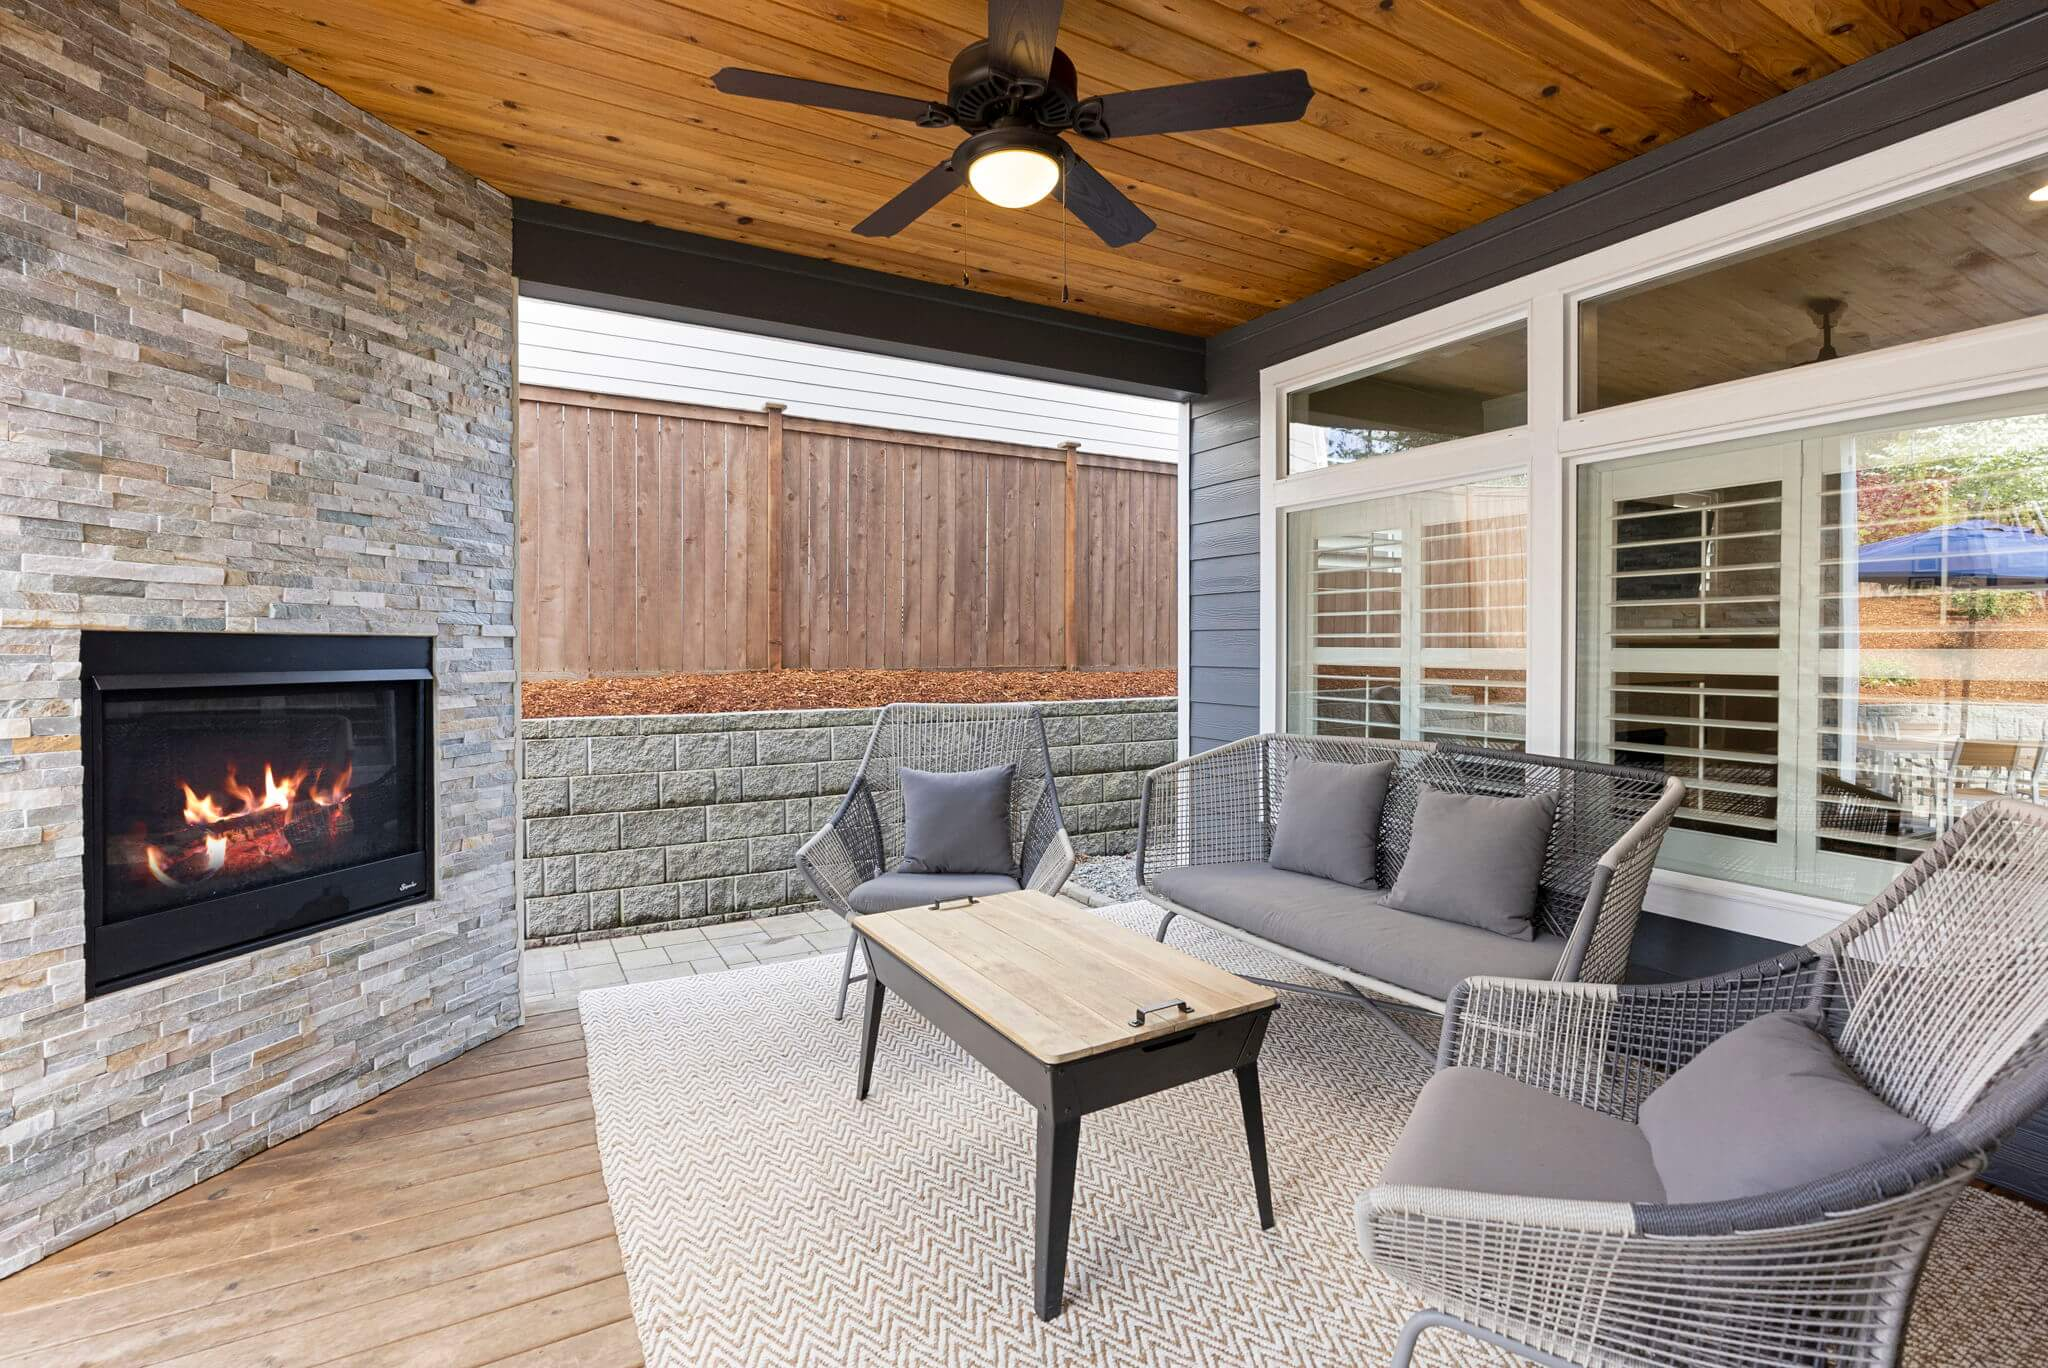 Covered deck with its own gas fireplace